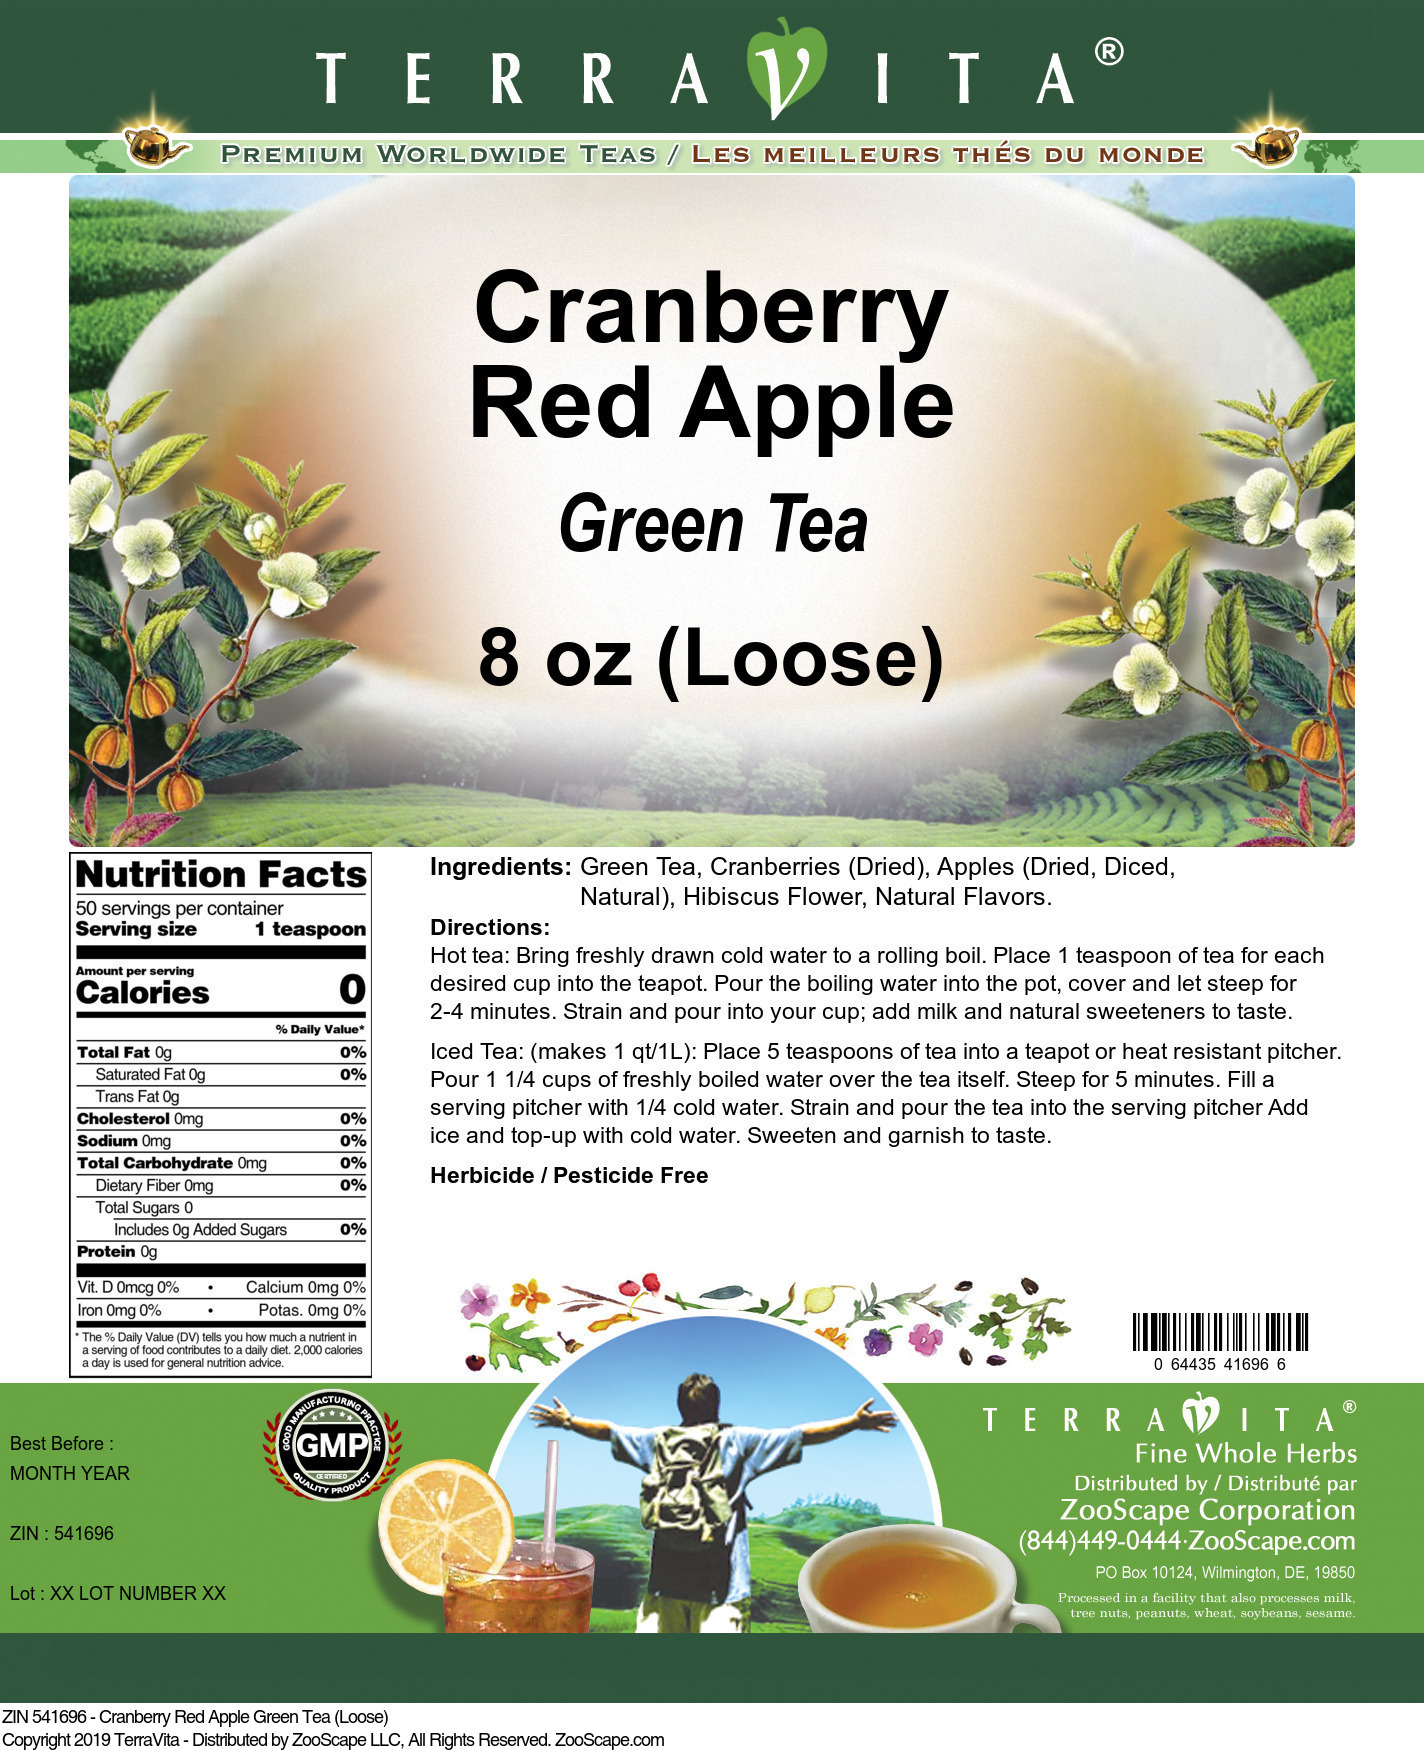 Cranberry Red Apple Green Tea (Loose)